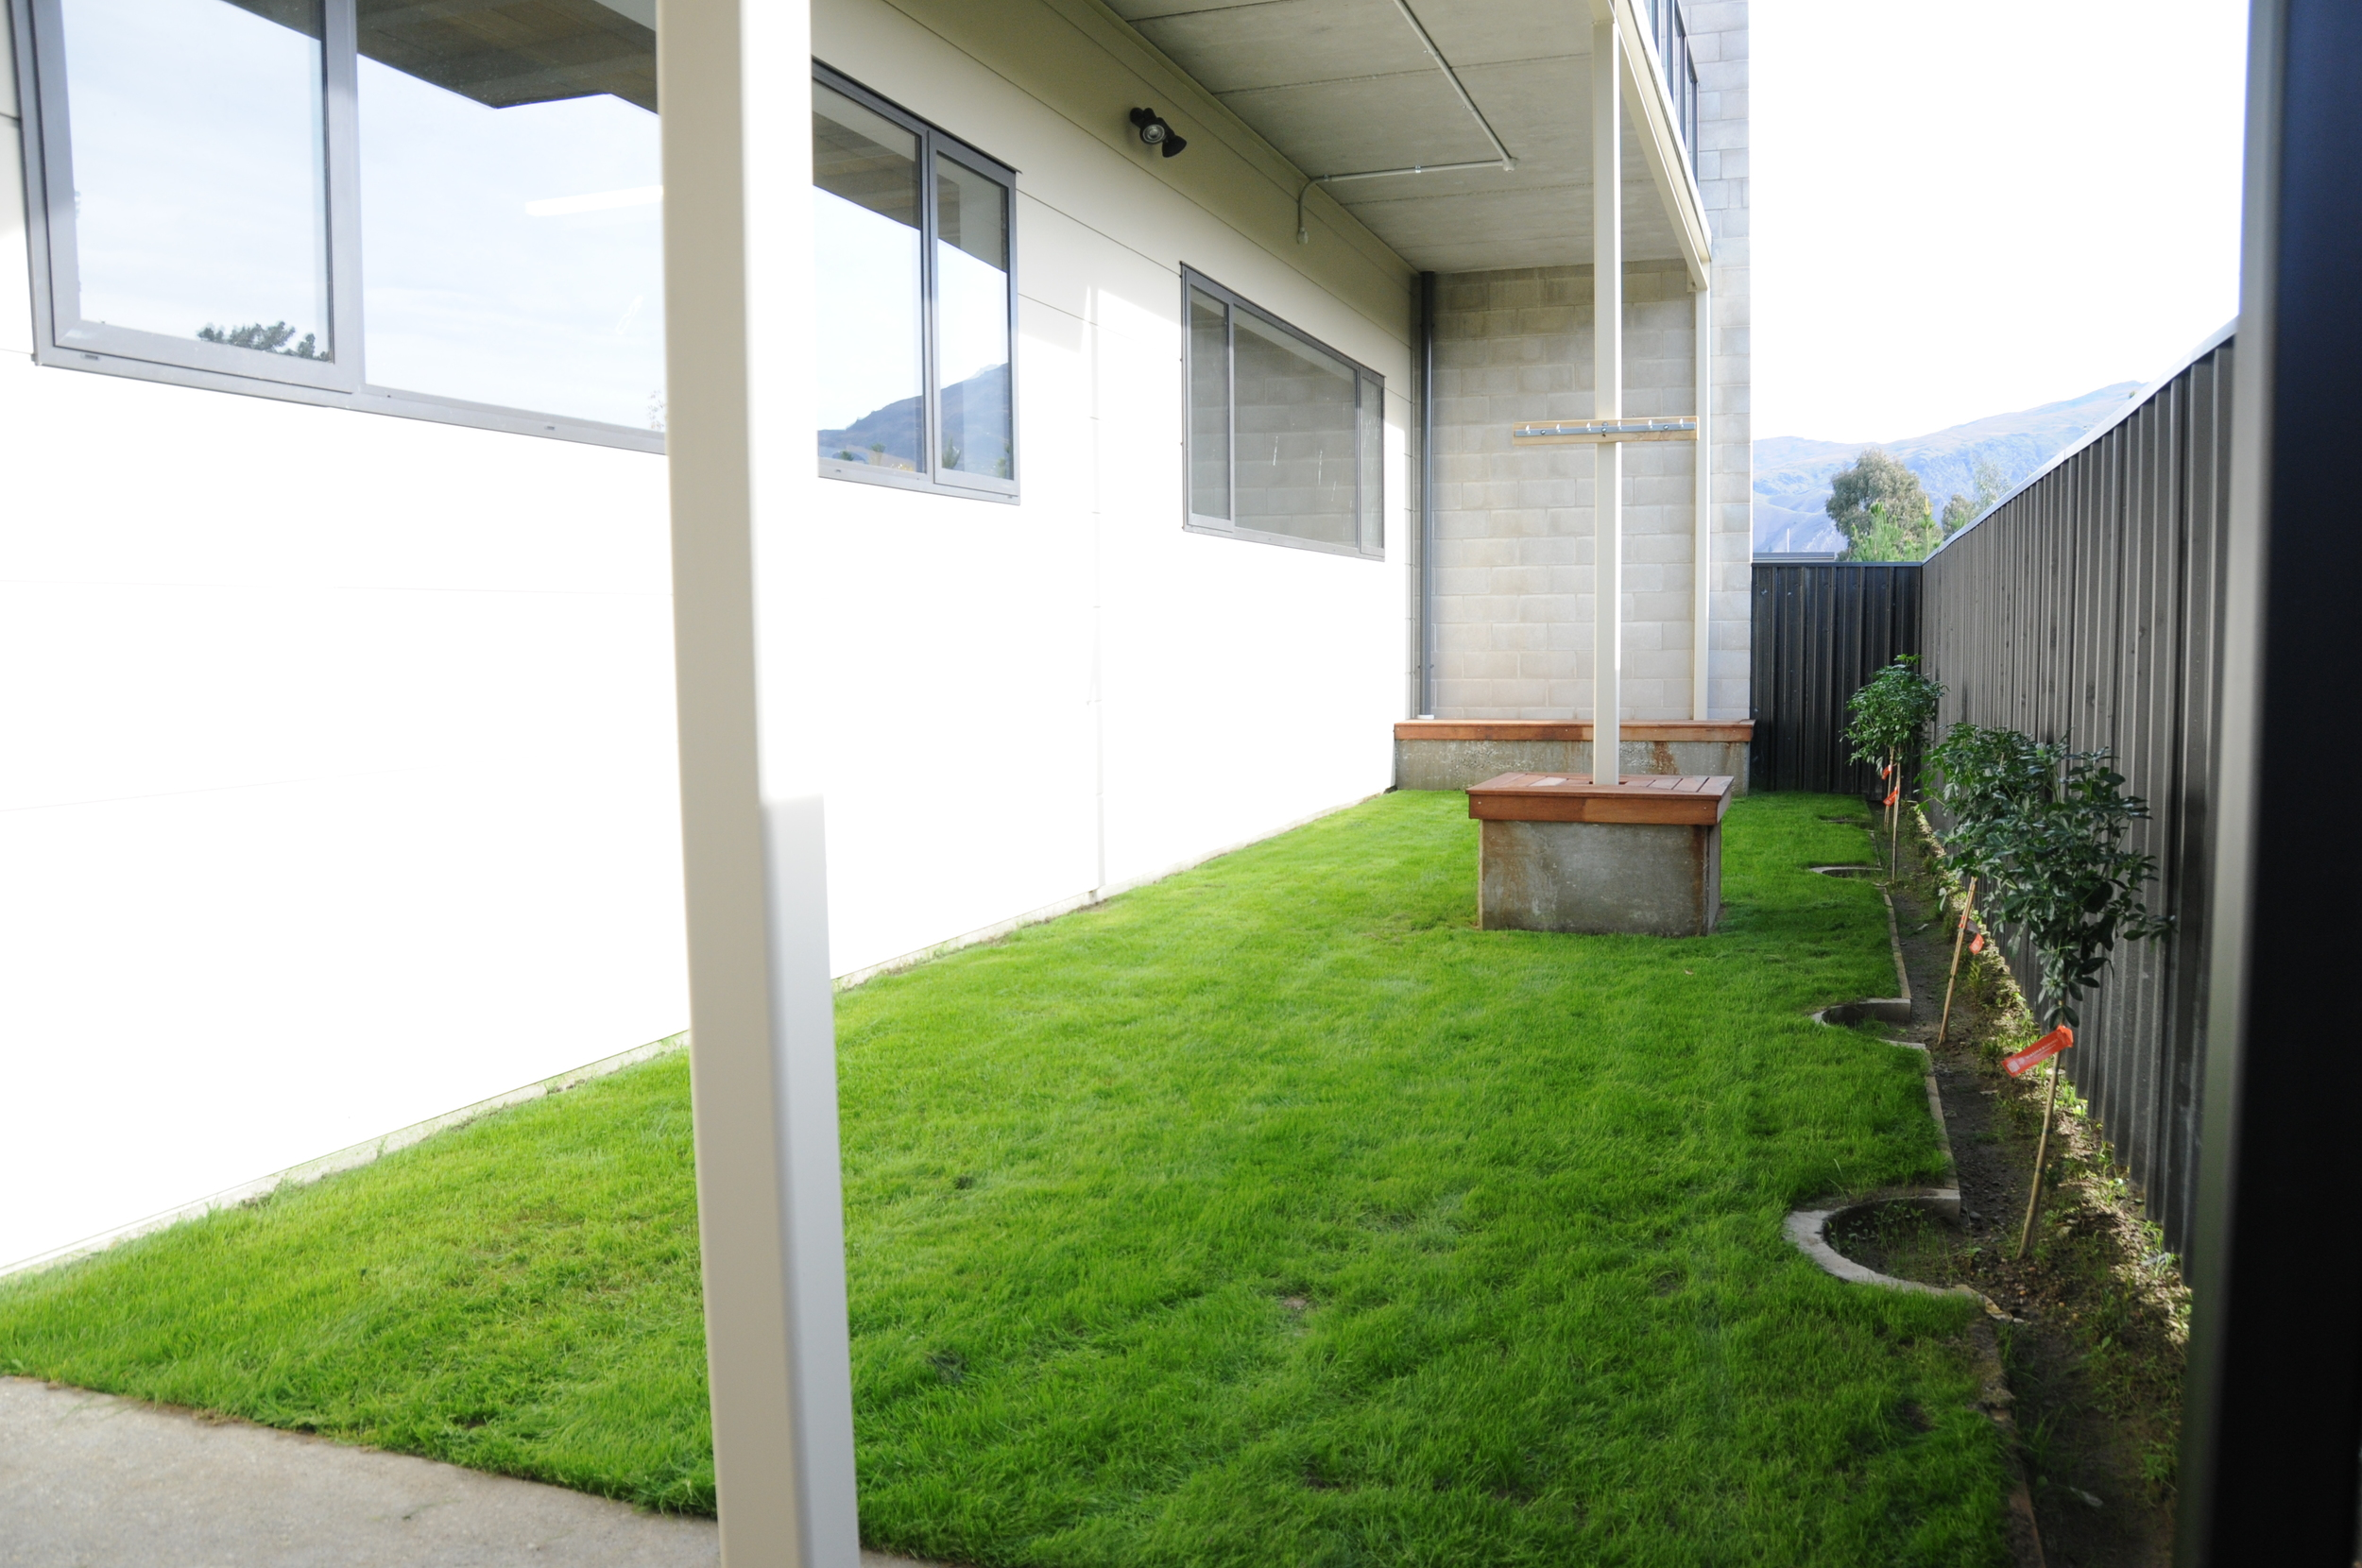 Private and enclosed BBQ area at the rear of the property